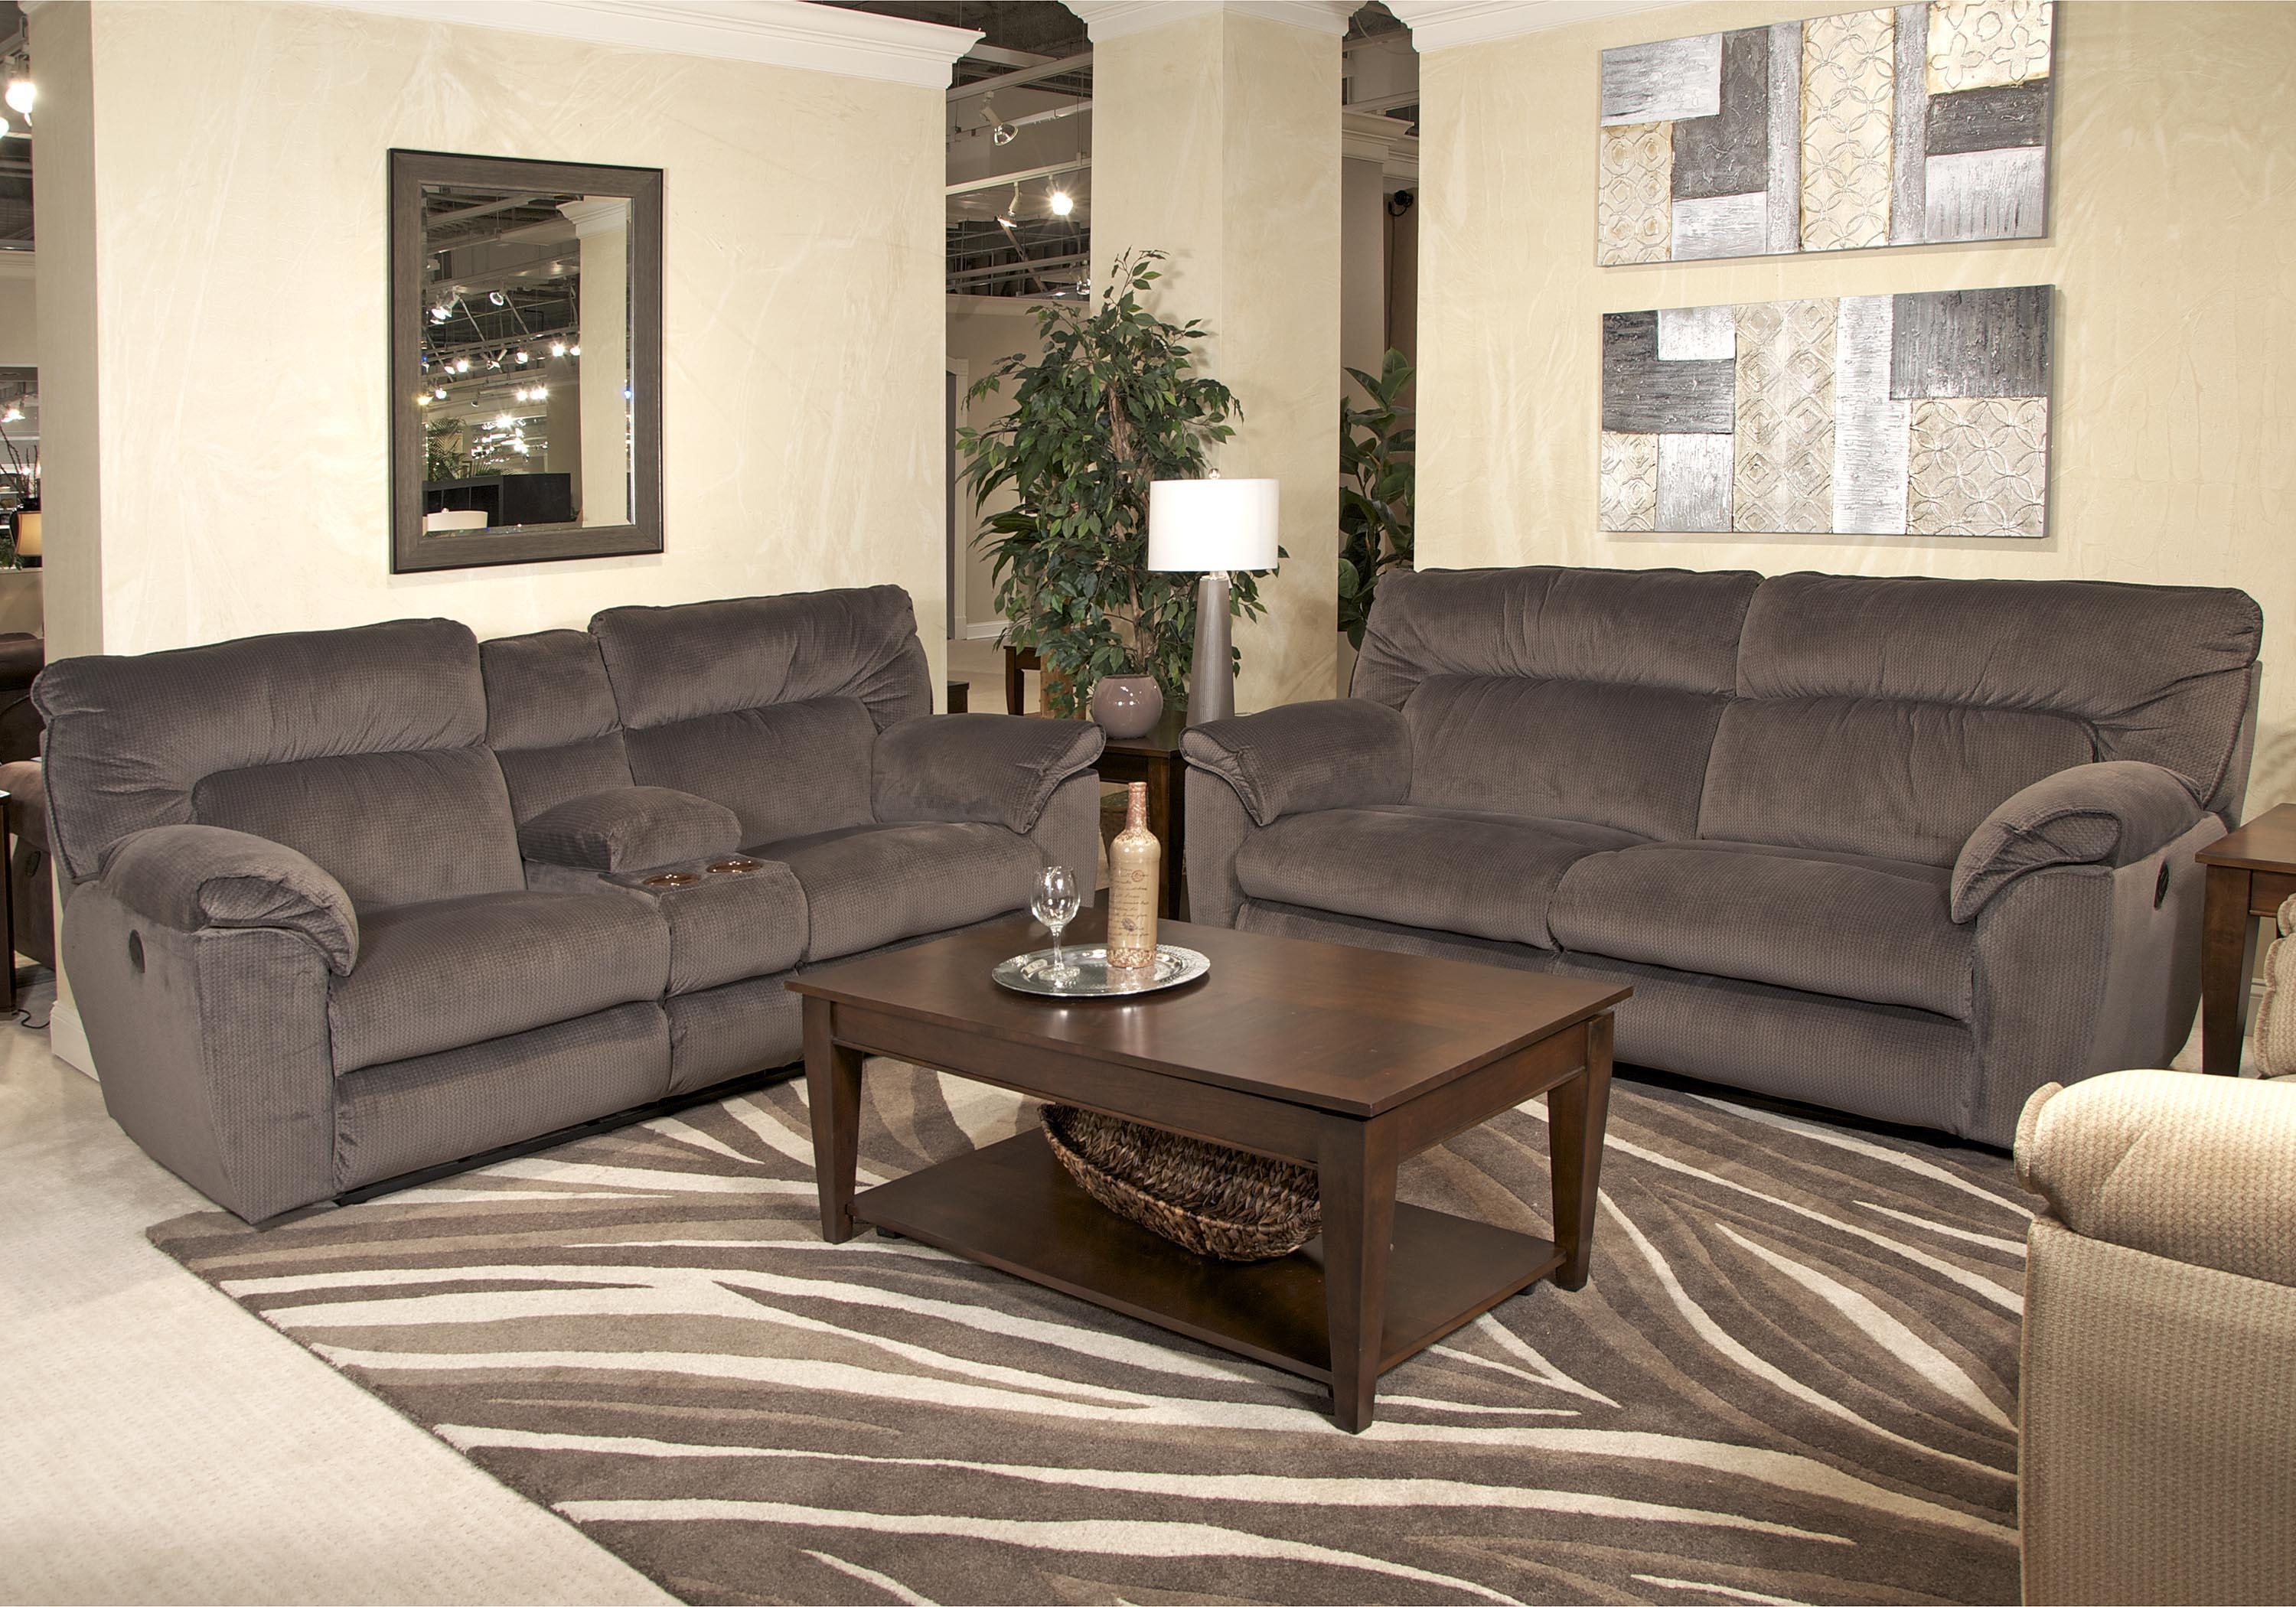 Living Room Furniture Gallery – Scott's Furniture Company Within Catnapper Sofas (Image 14 of 20)